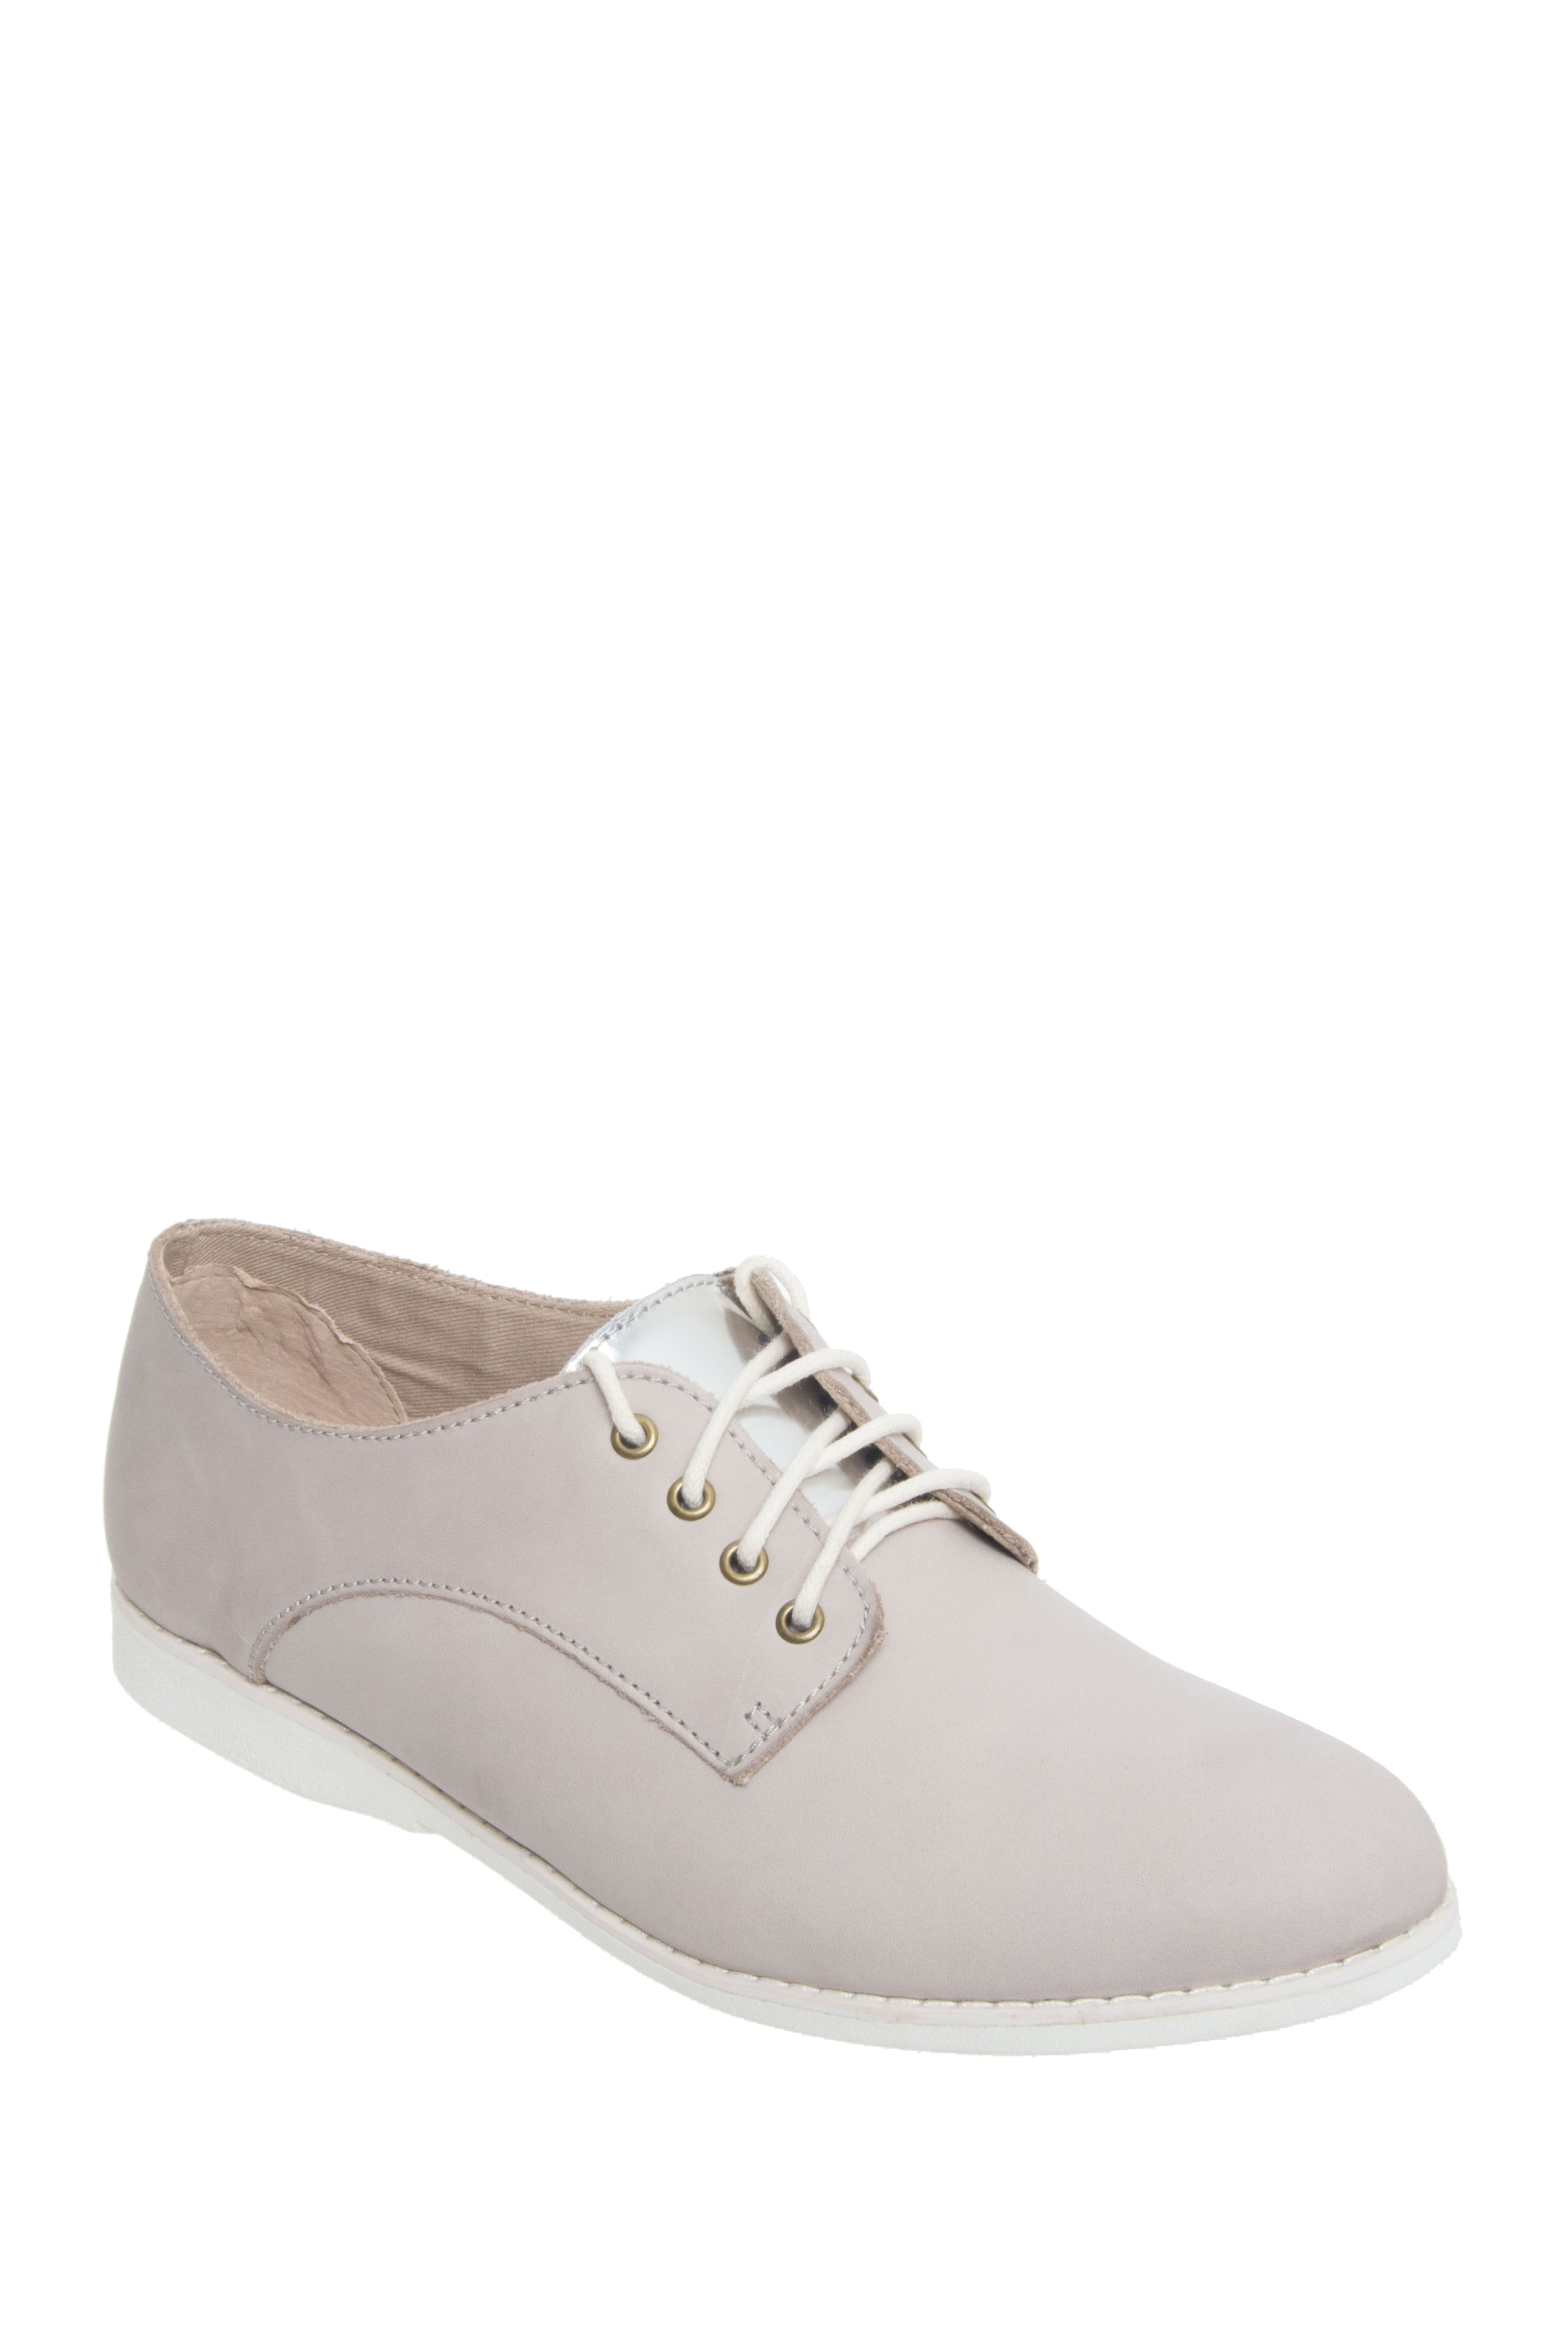 ROLLIE NATION Derby Minimal Shoes - Stone